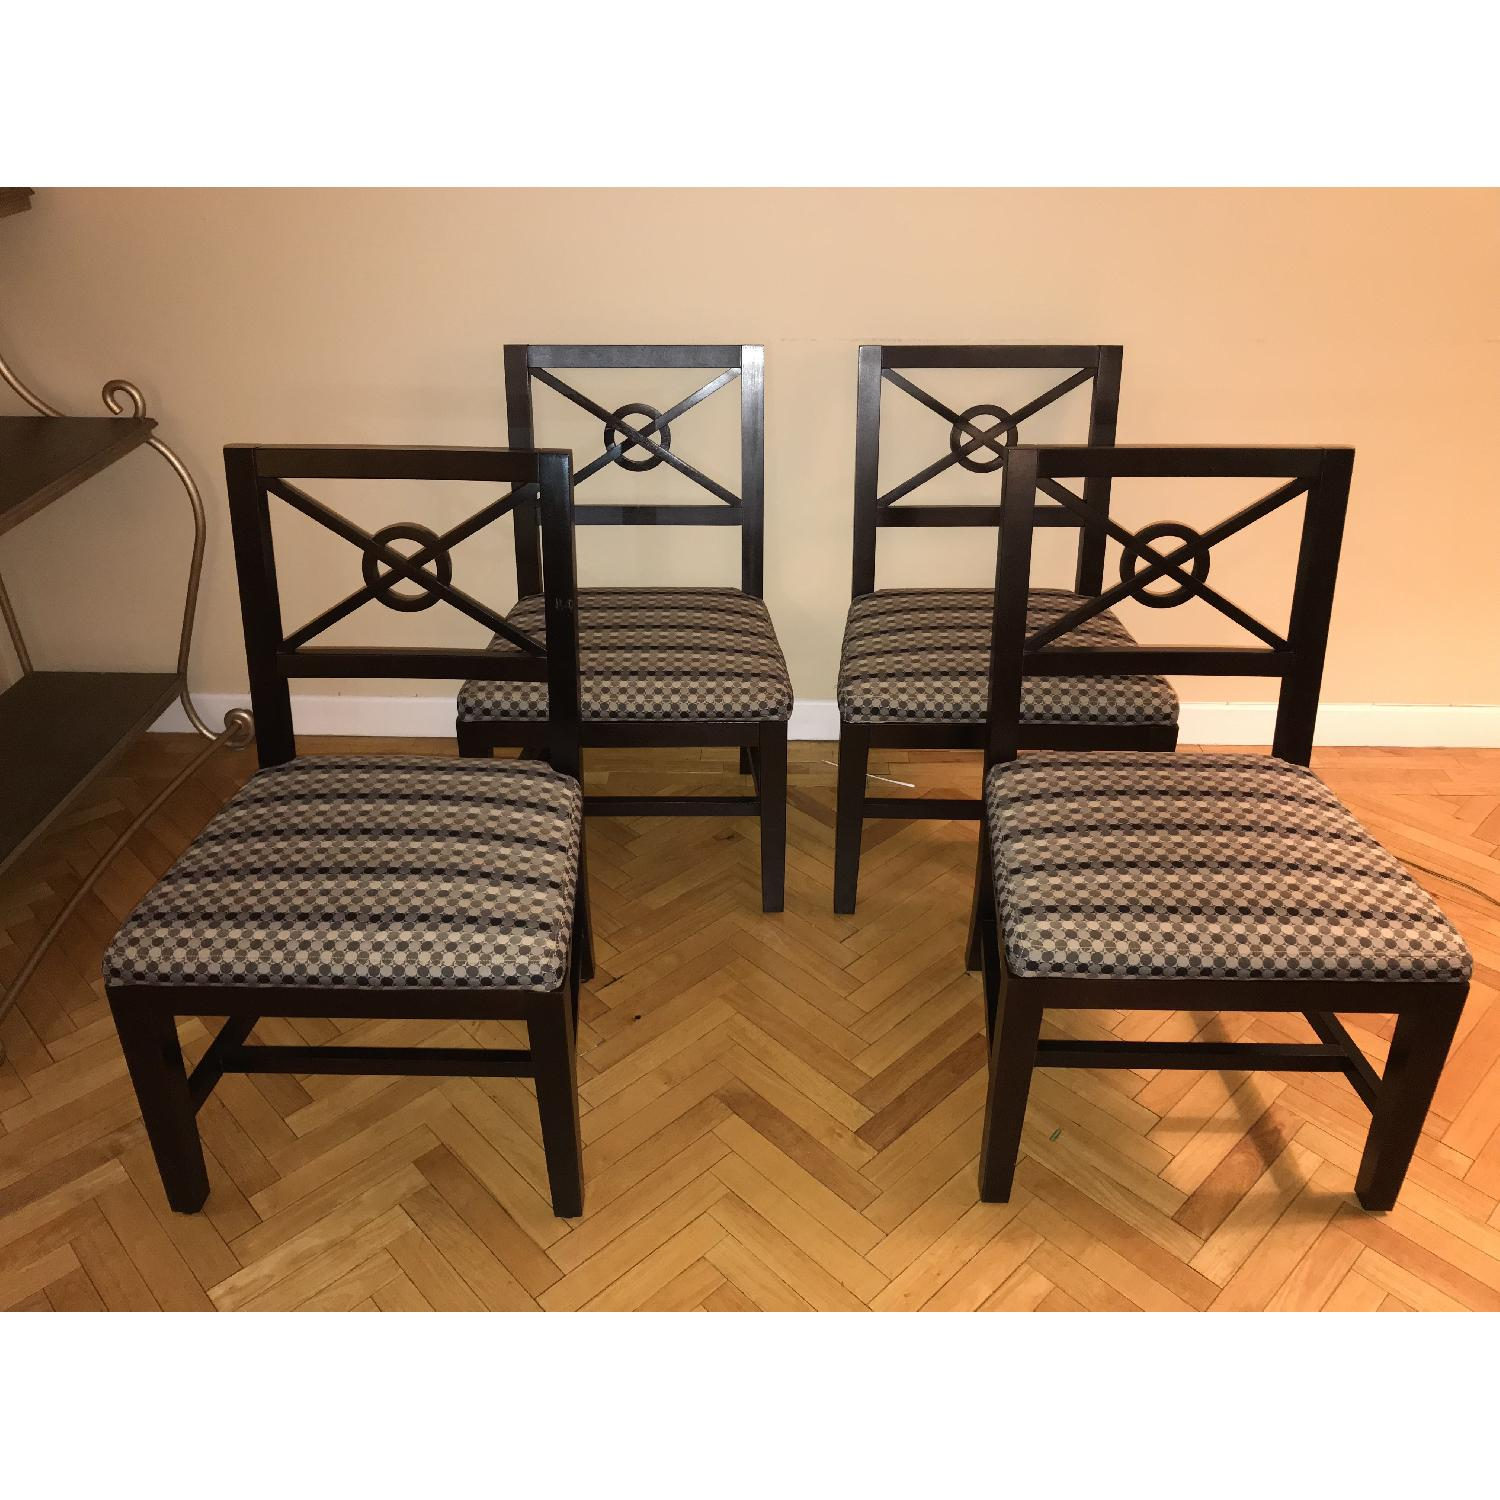 Wooden Chairs w/ Modern Upholstery-1